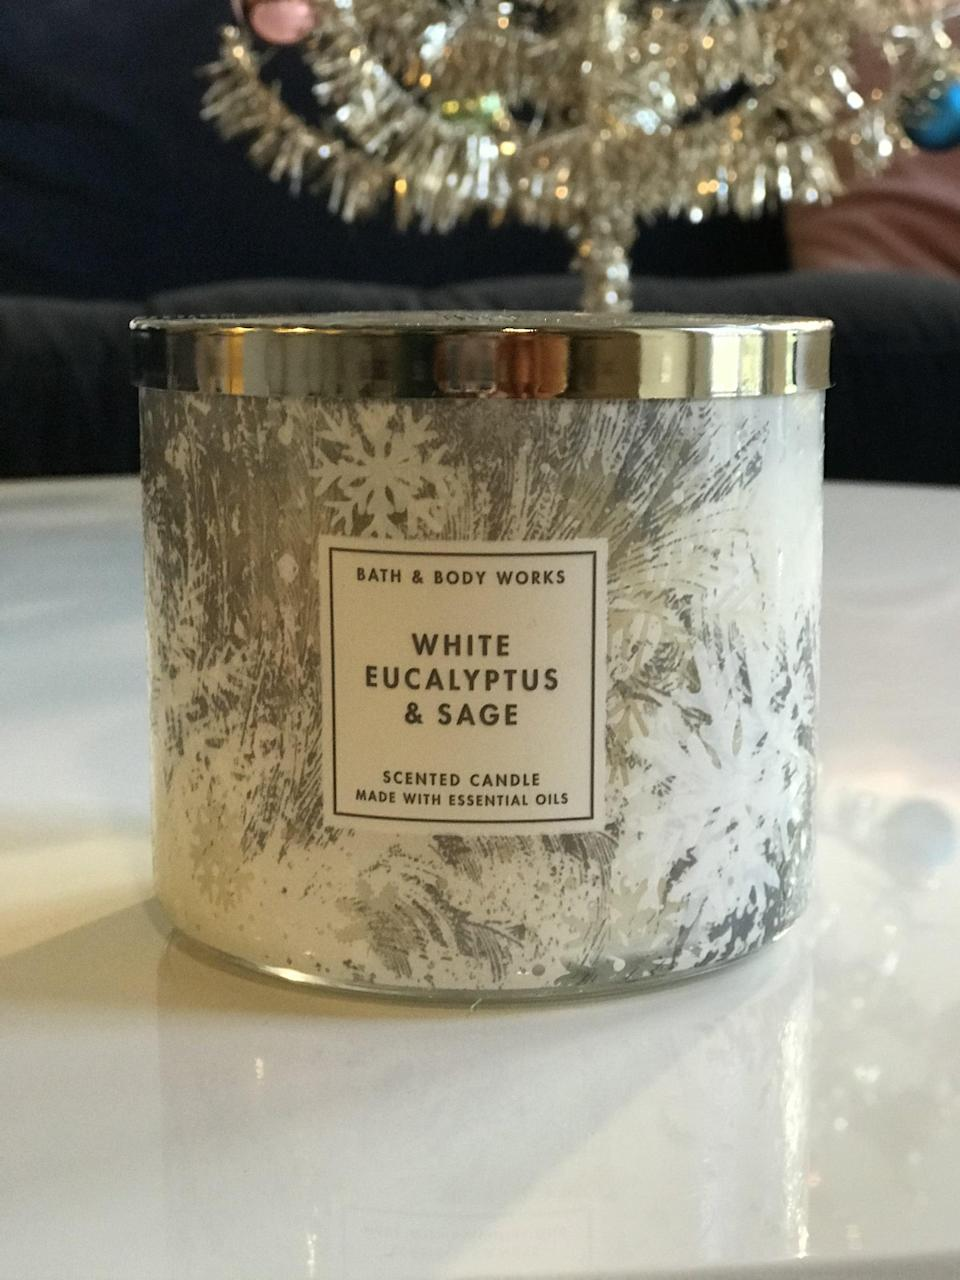 <p><span>White Eucalyptus and Sage 3-Wick Candle</span> ($15, originally $25)</p> <p><strong>What It Smells Like:</strong> Going to a spa on a snowy Swiss mountain top.</p>